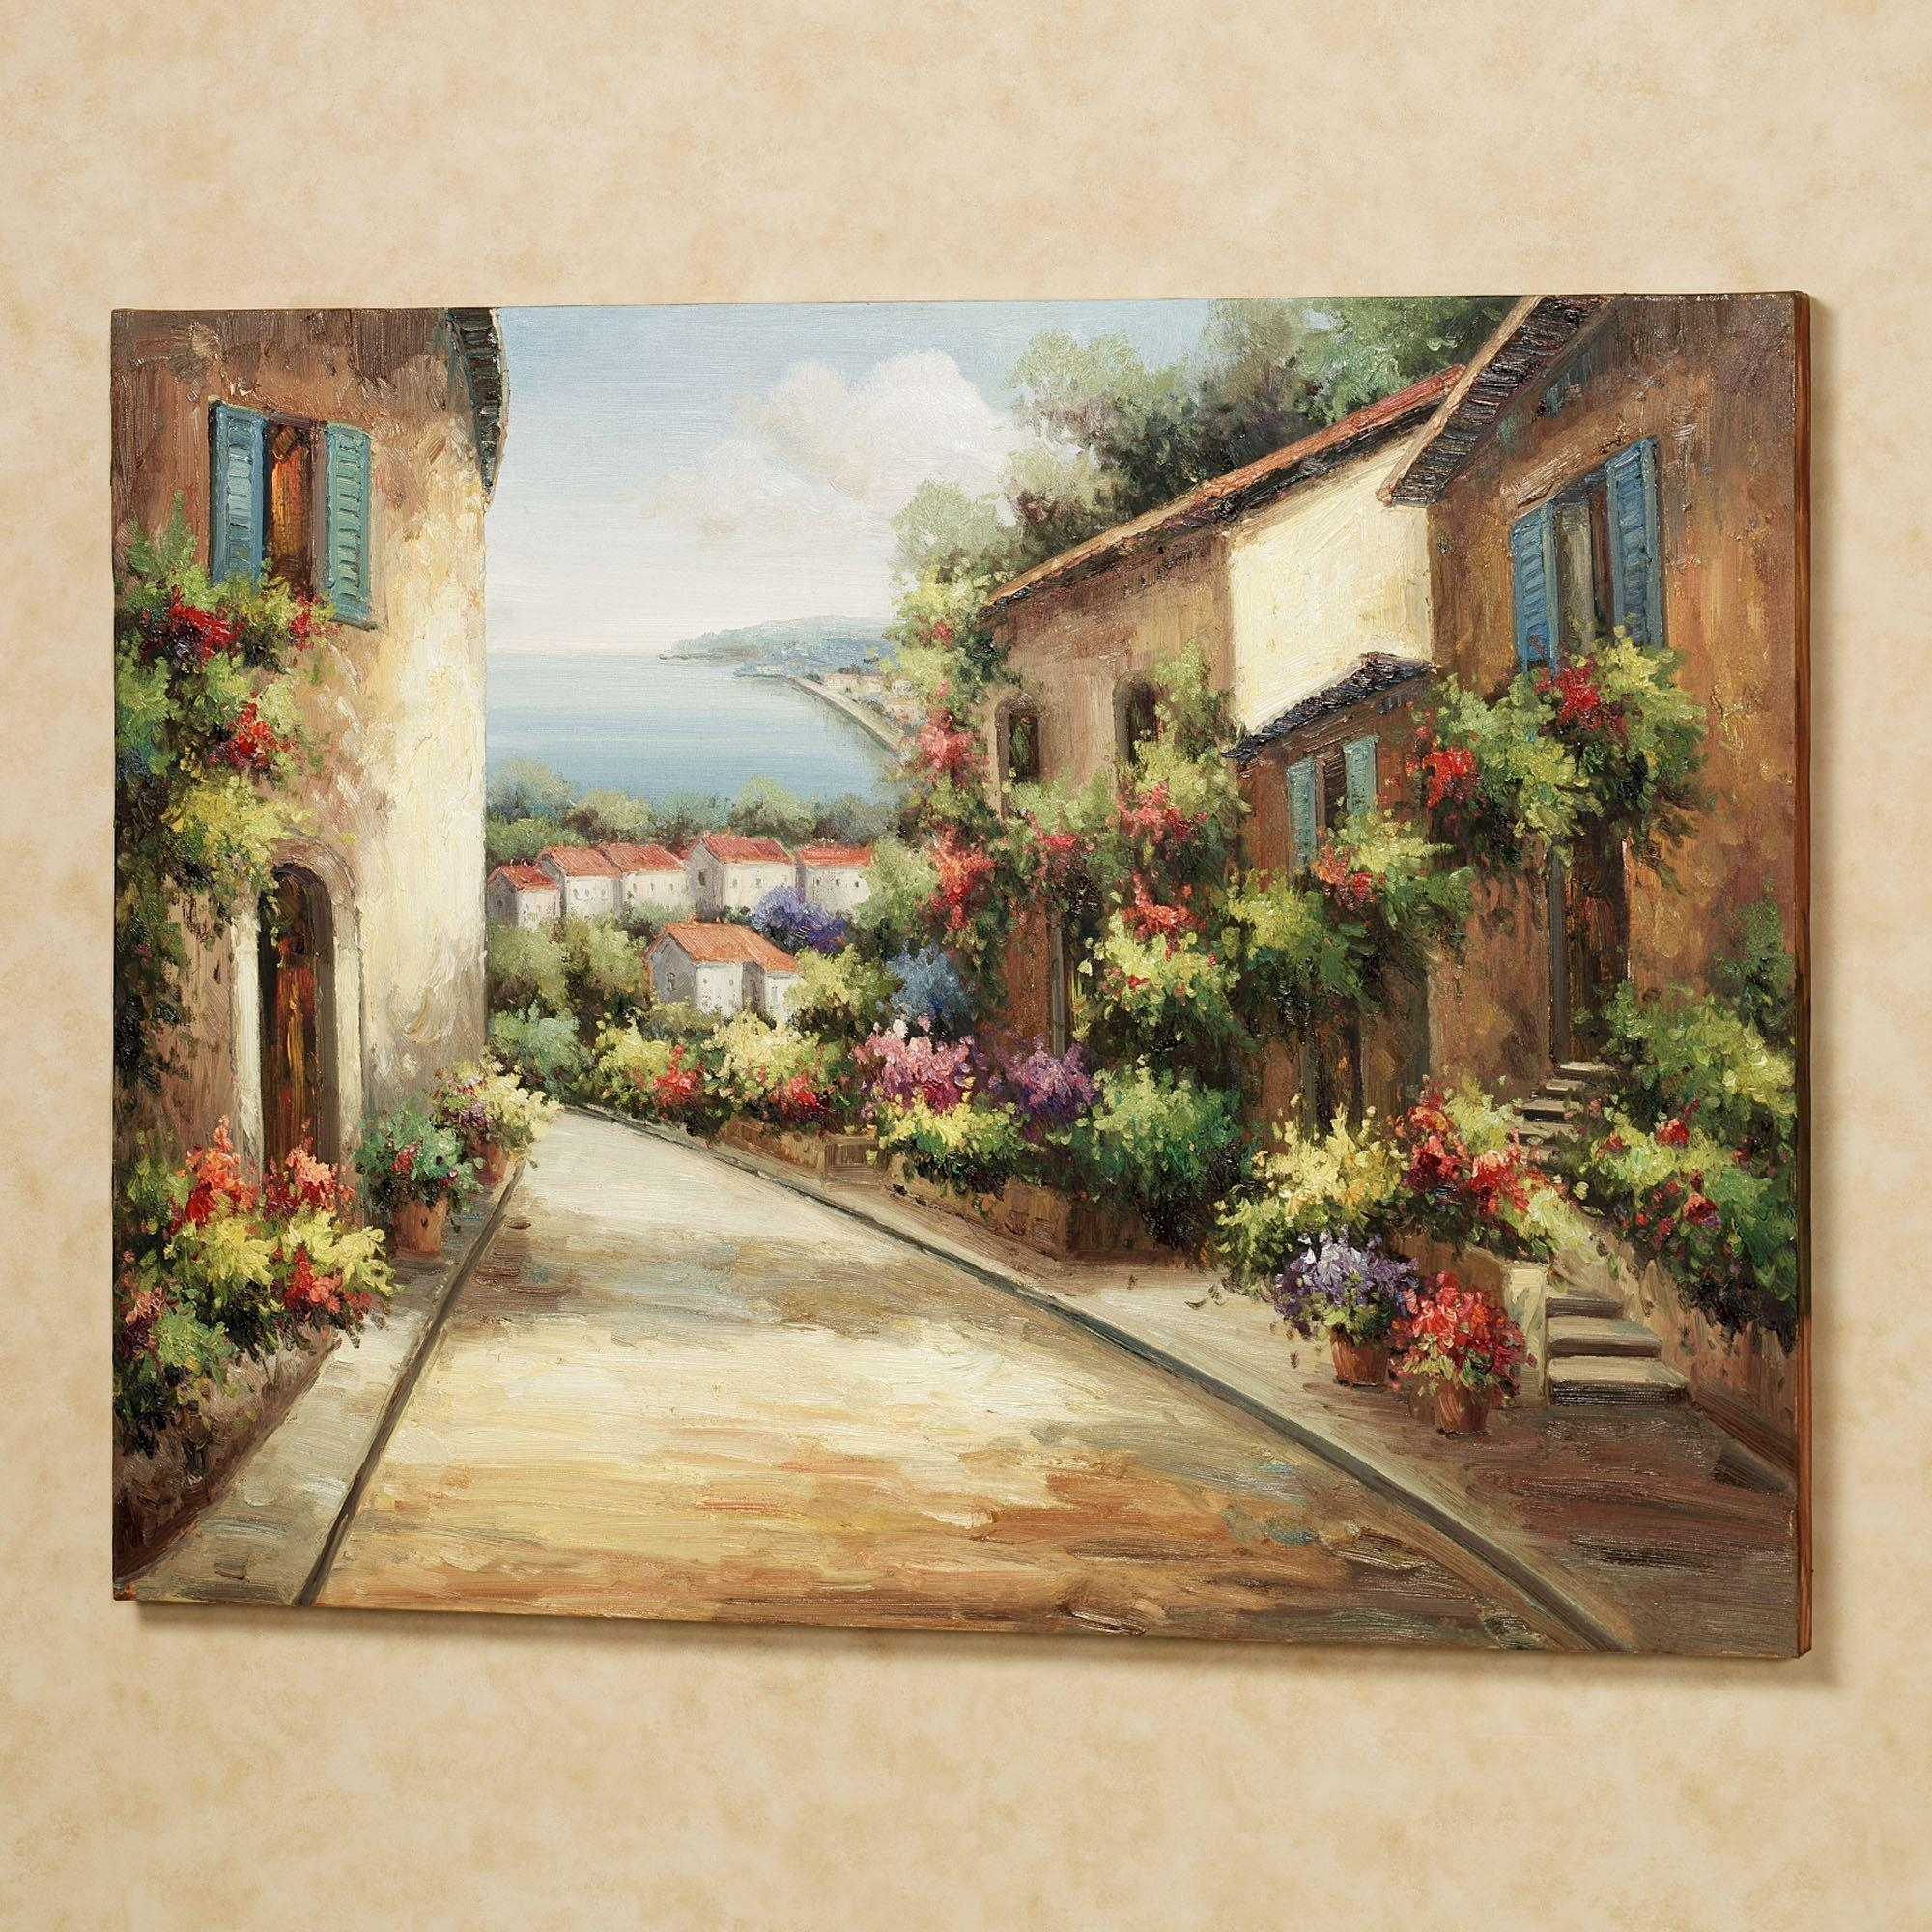 Streets Of Tuscany Canvas Wall Art In Tuscany Wall Art (View 4 of 20)